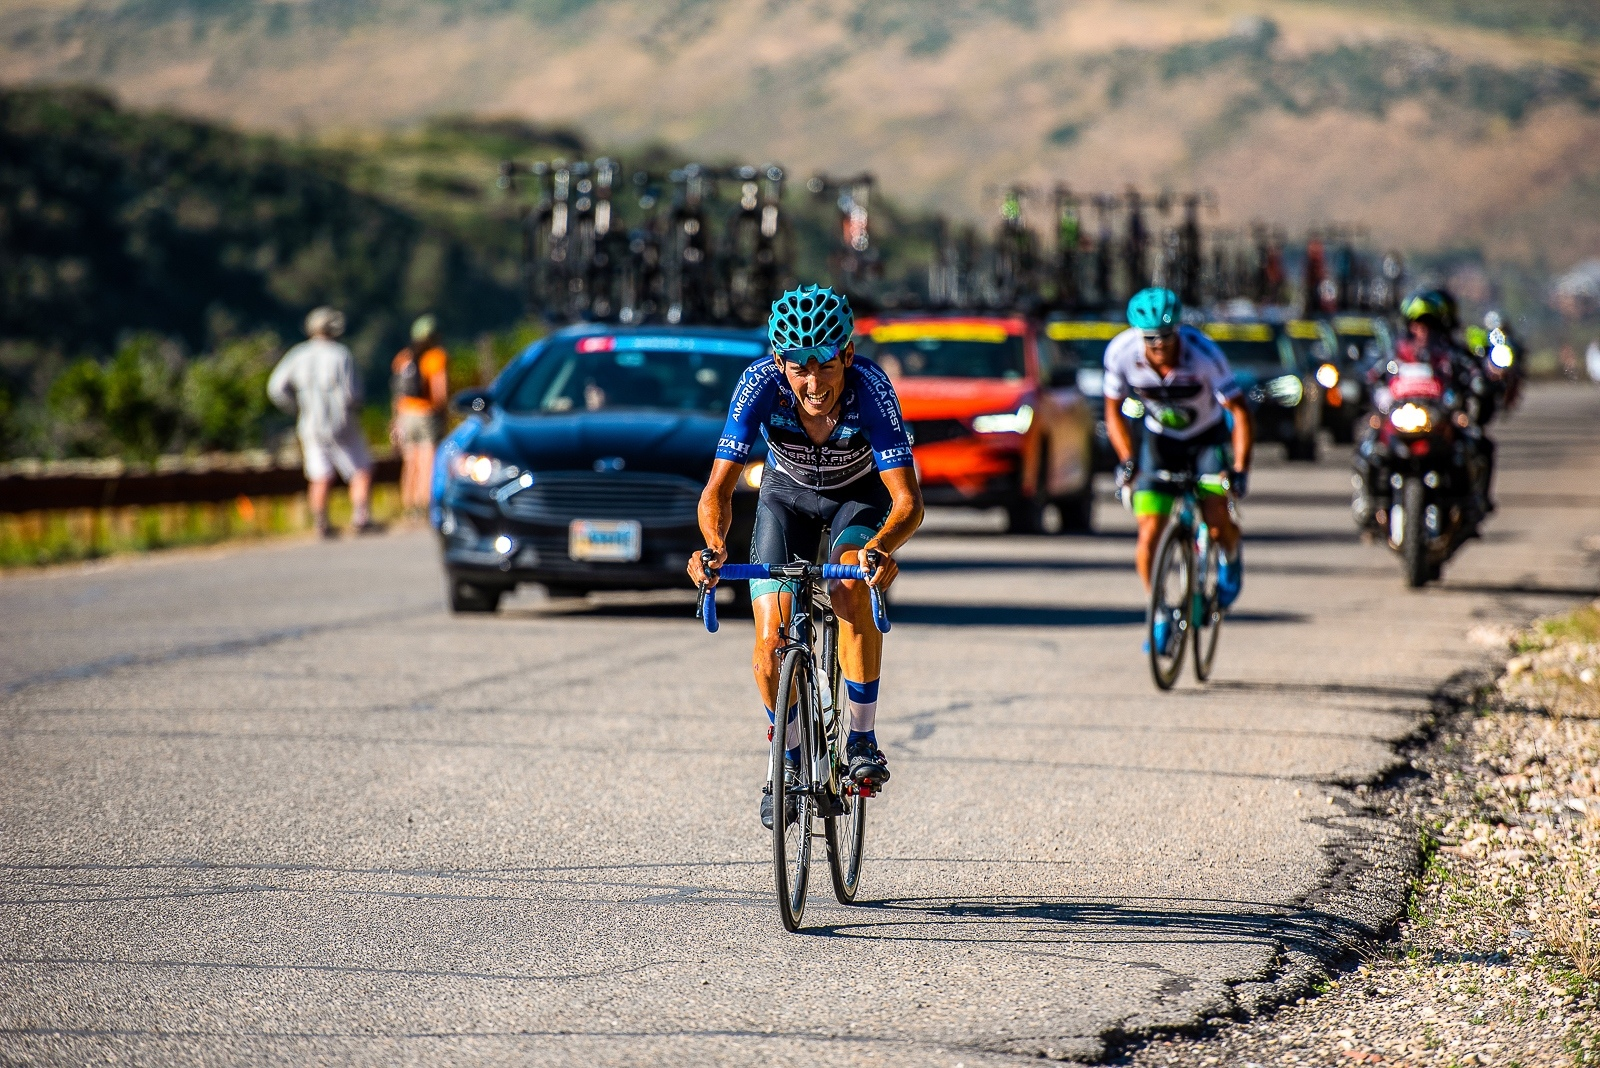 Fan Favorite Bernat Font Mas (303 Project) Stage 5, 2019 Tour of Utah. Photo by Steven L. Sheffield